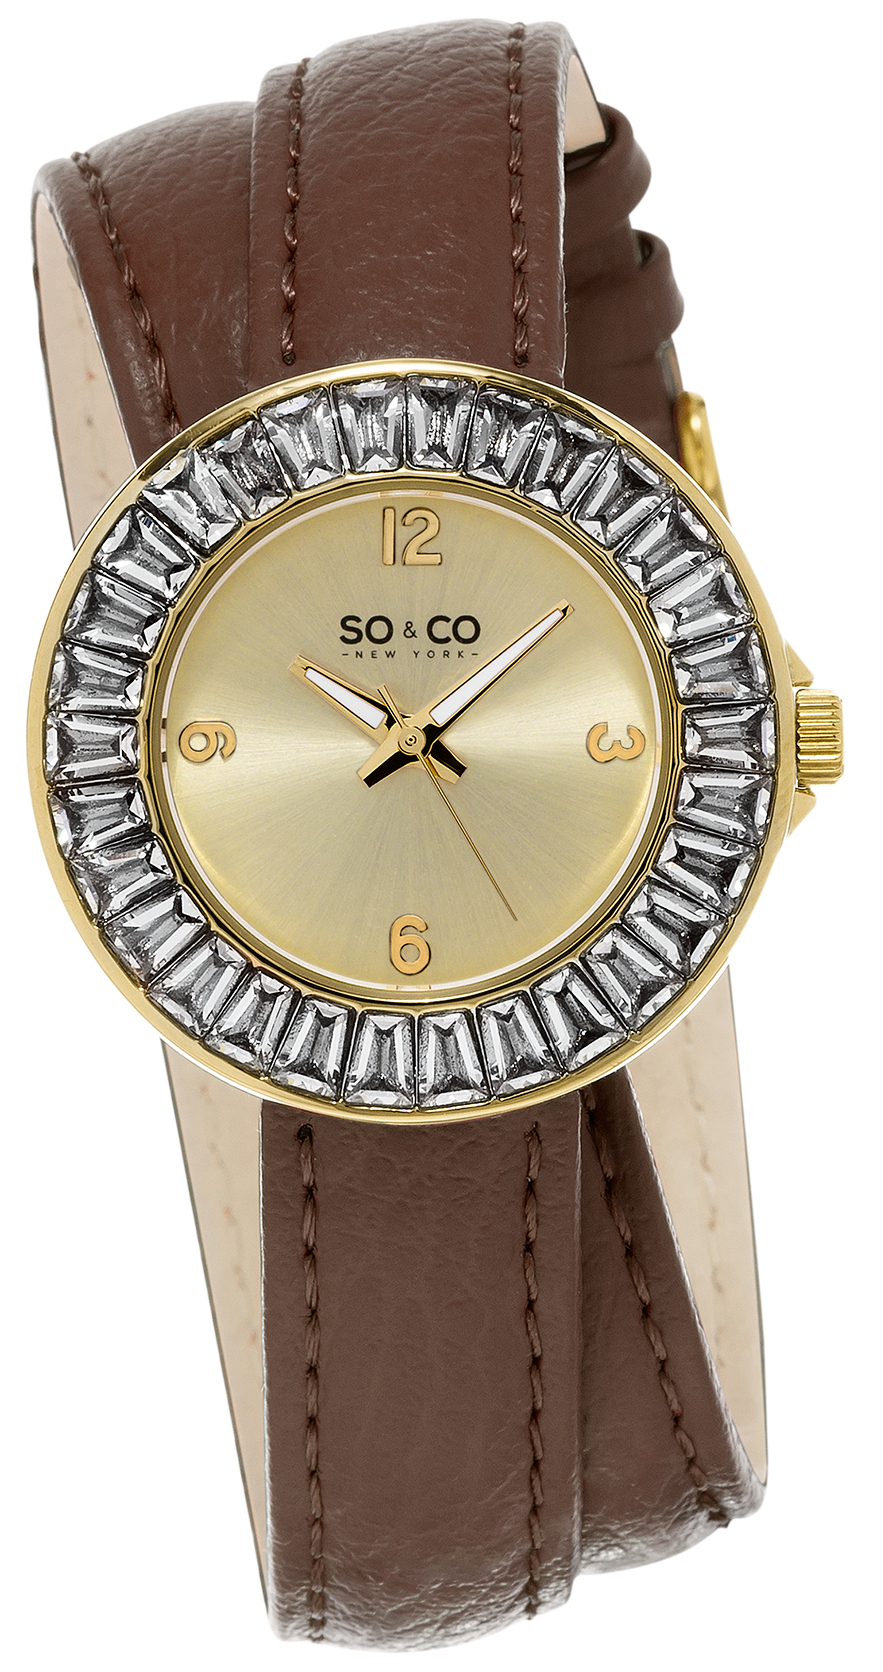 So & Co New York SoHo Dameur 5070.2 Champagne/Læder Ø34 mm